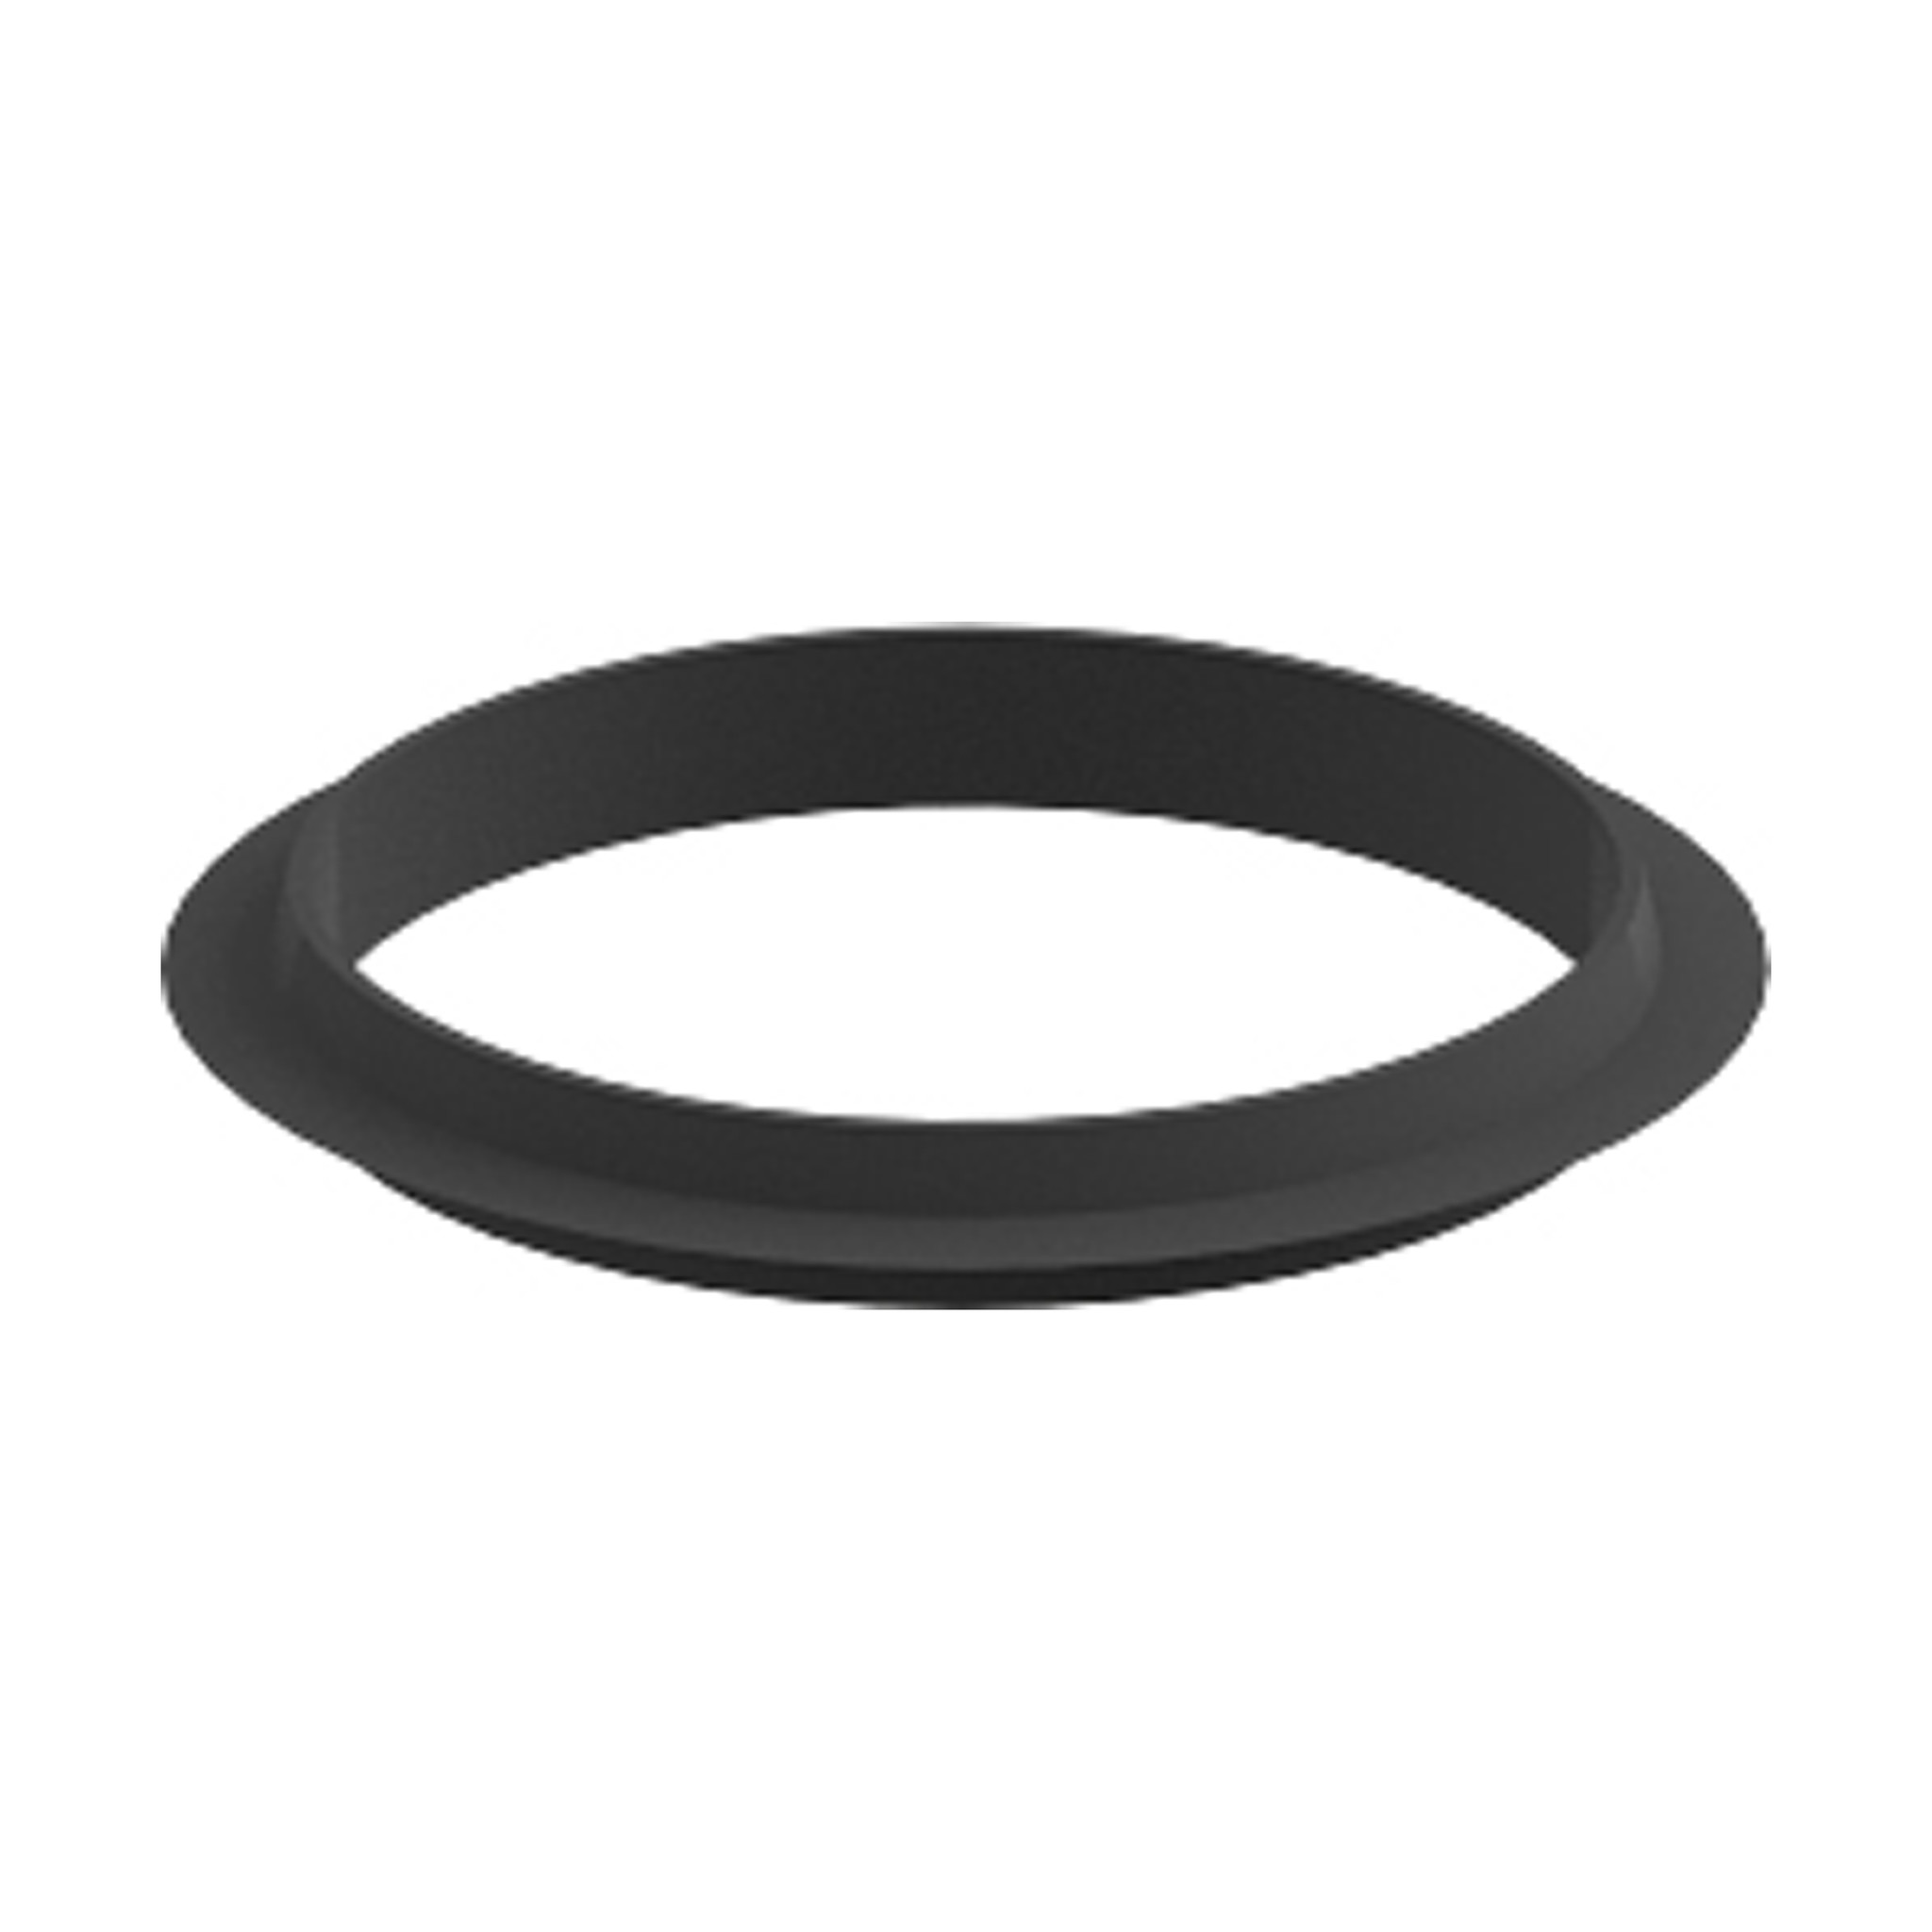 InBe O-ring for InBe washbasin stop/go-drains